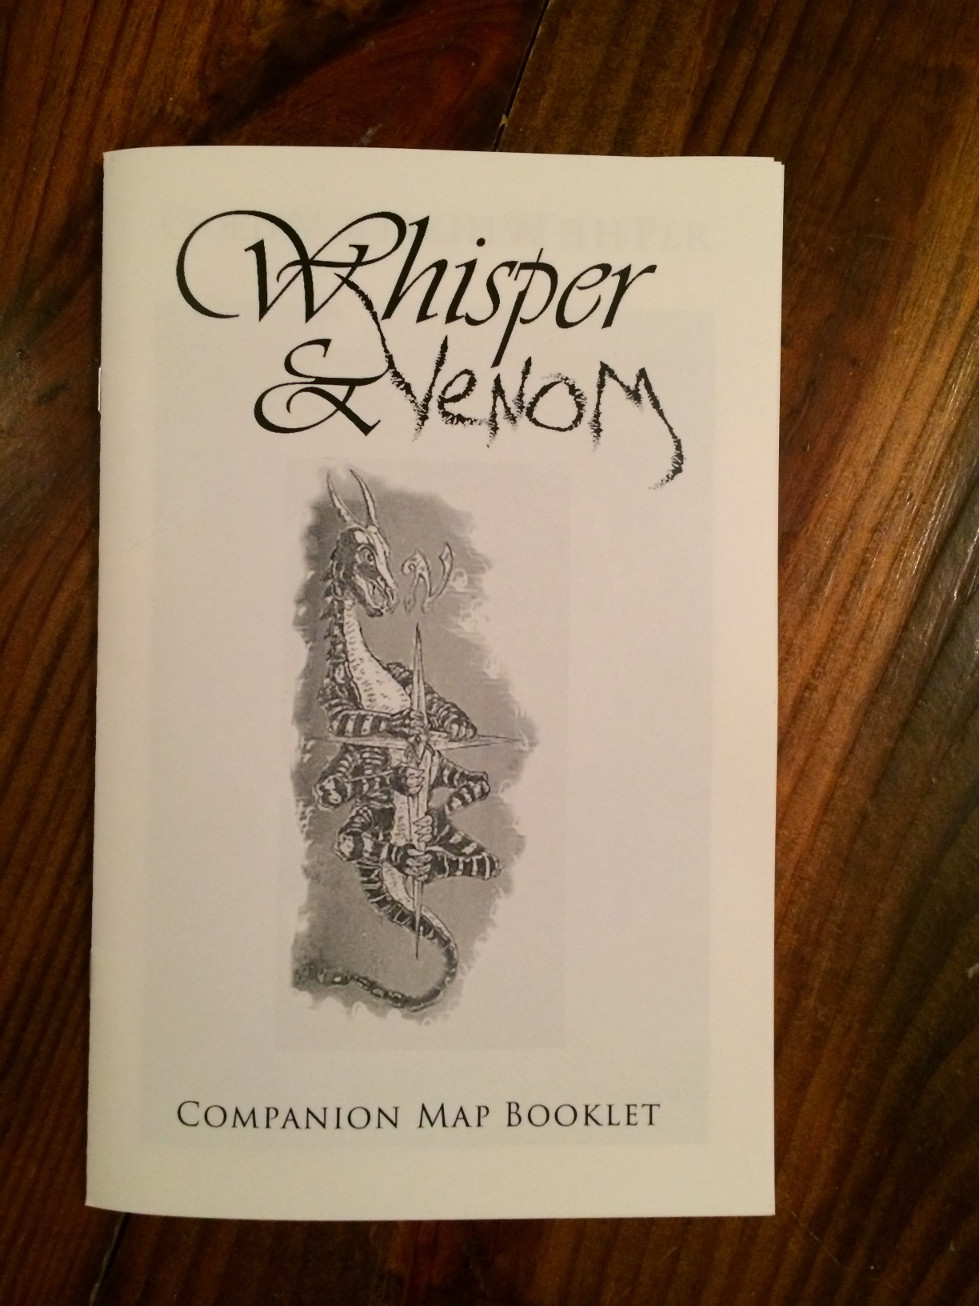 Companion Map Booklet Cover